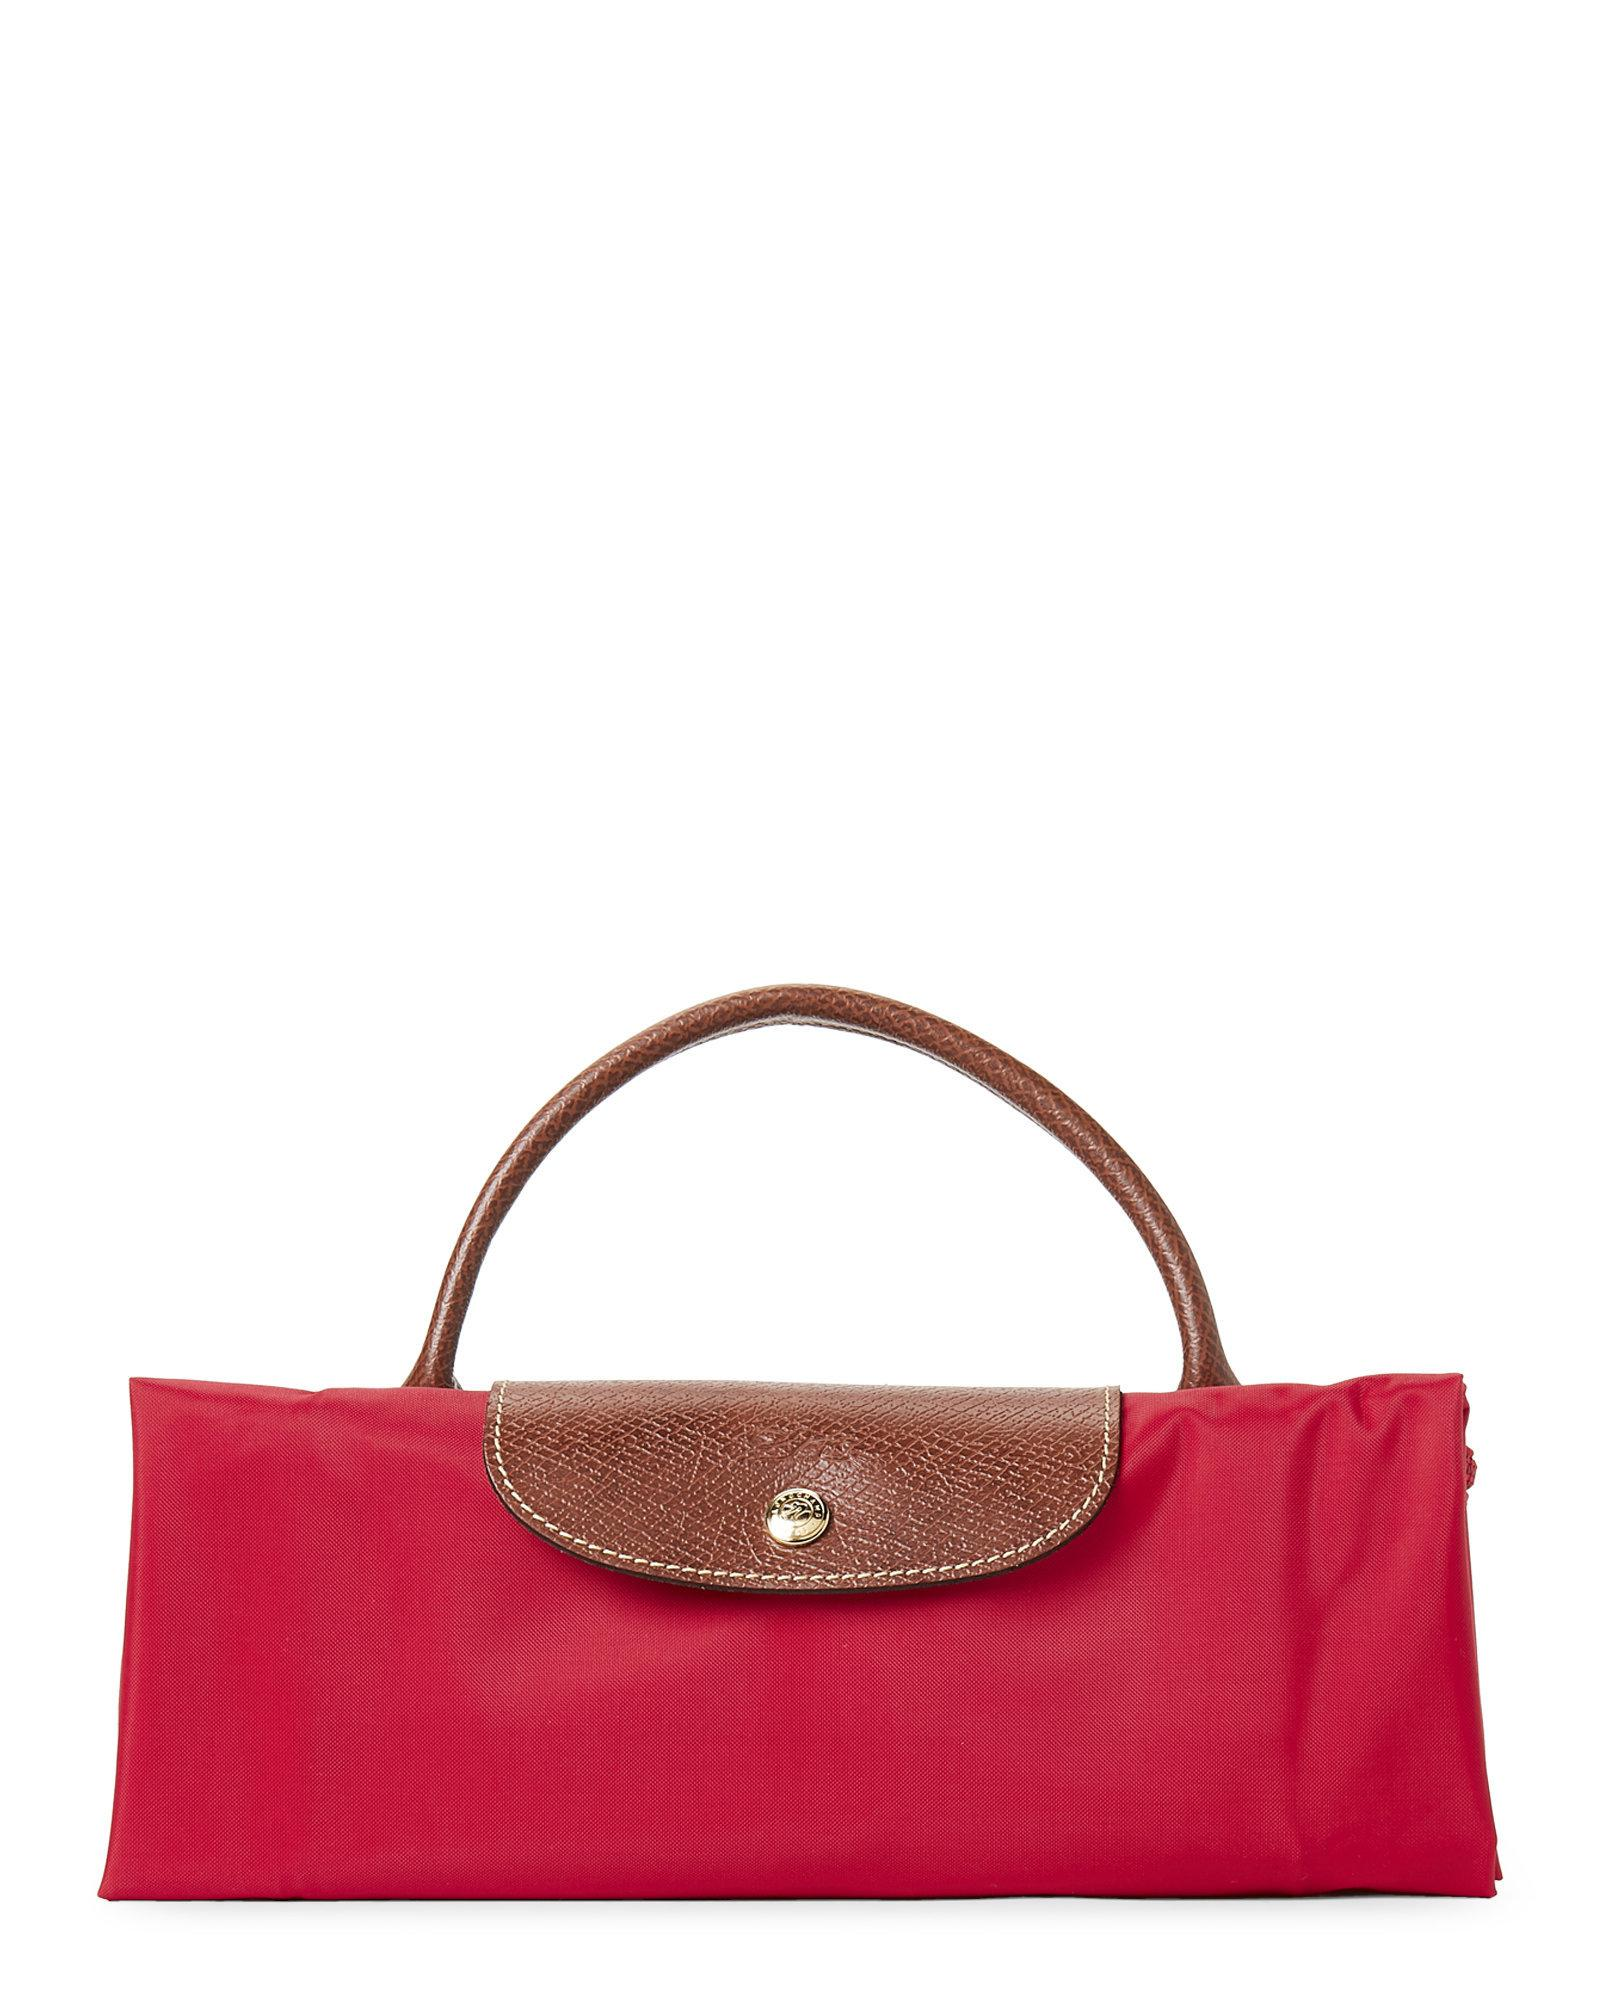 23398042e047 Lyst - Longchamp Red Garance Le Pliage Néo Medium Weekender in Red